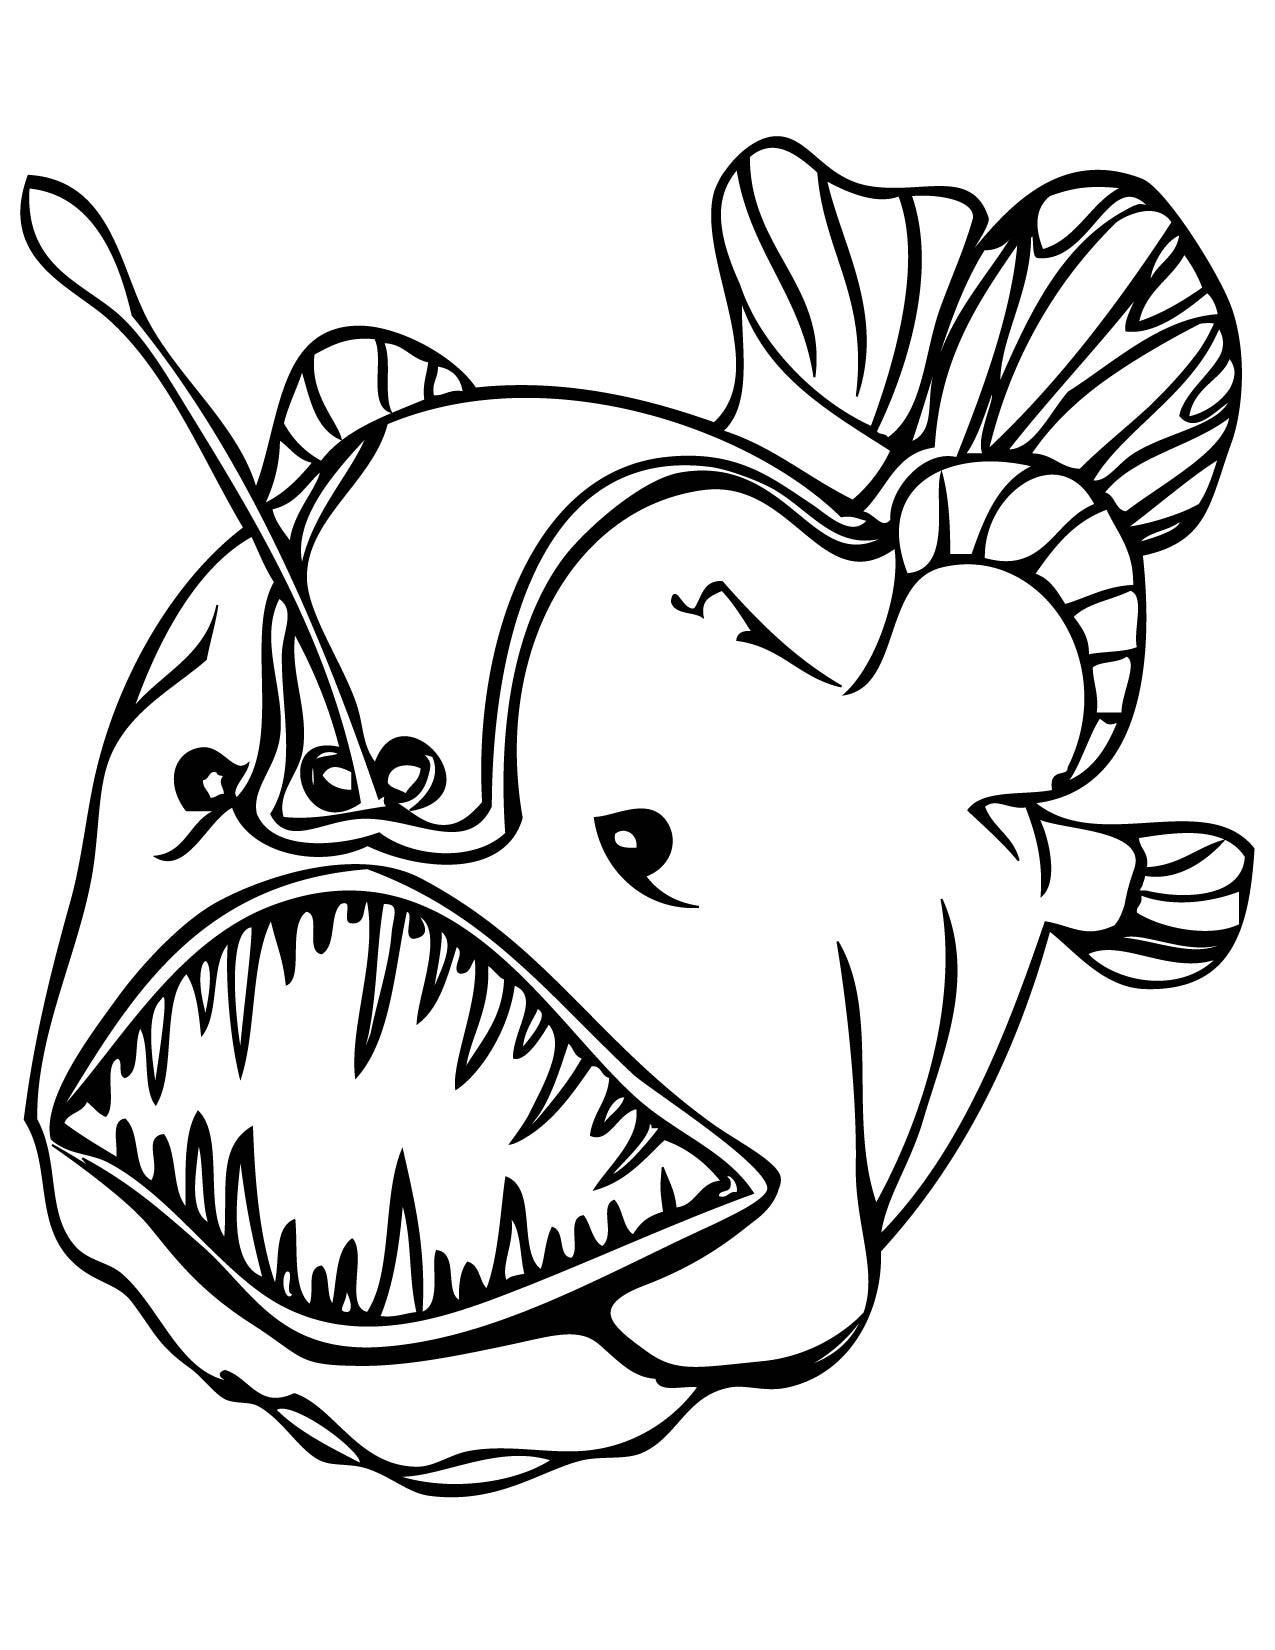 coloring fish pages print download cute and educative fish coloring pages fish pages coloring